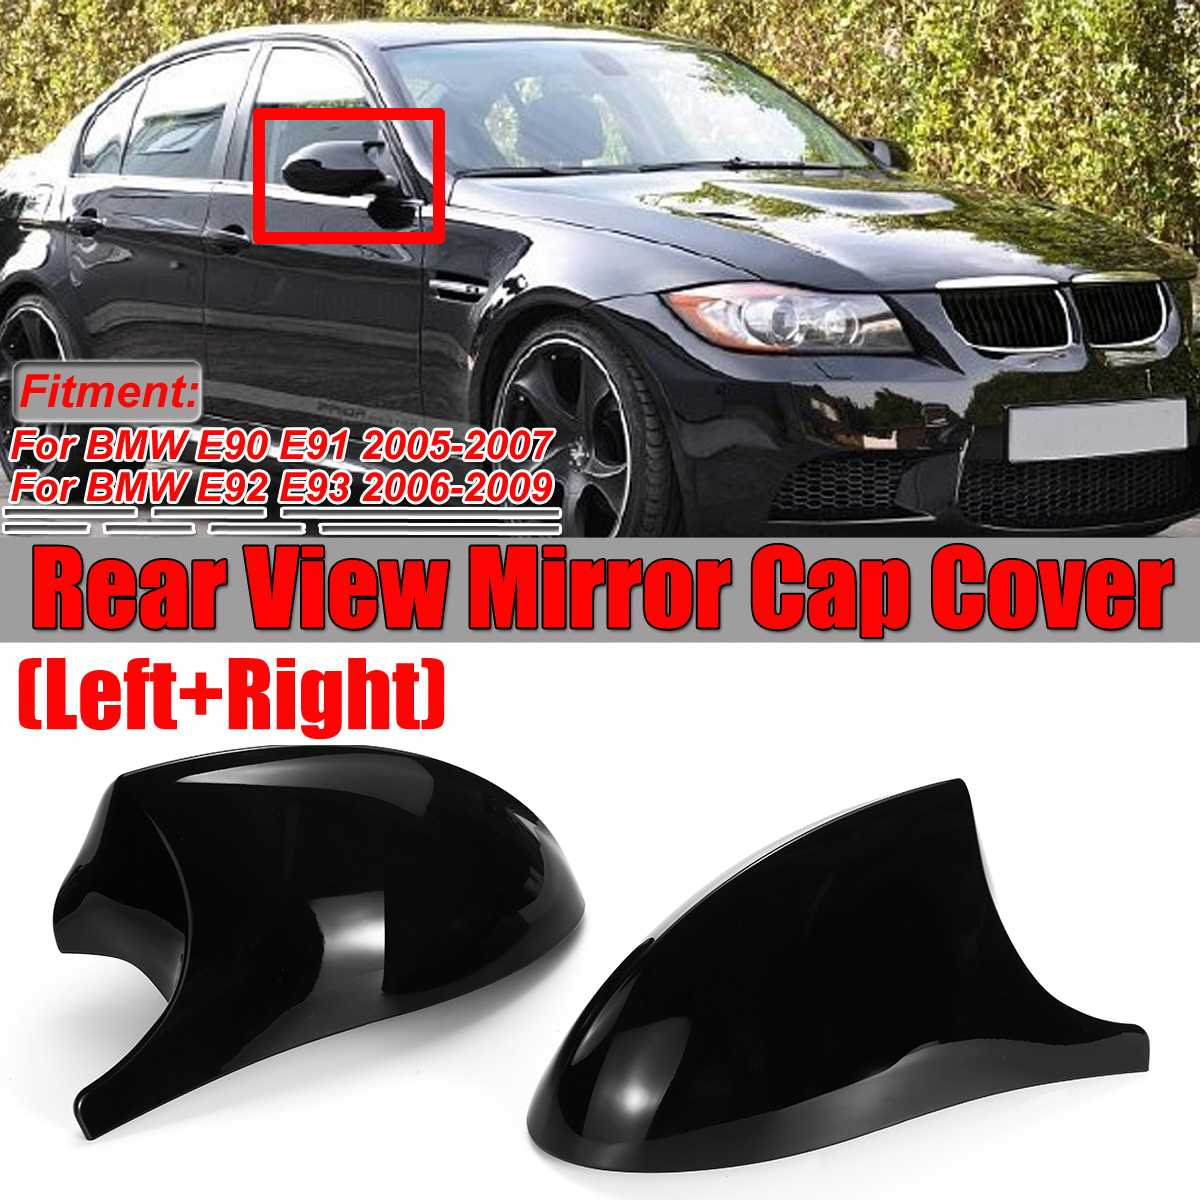 2x Real Carbon Fiber/ABS Mirror Cover E90 Car Side Rearview Side Mirror Cover Cap For BMW E90 E91 E92 E93 M3 Style E80 E81 E87